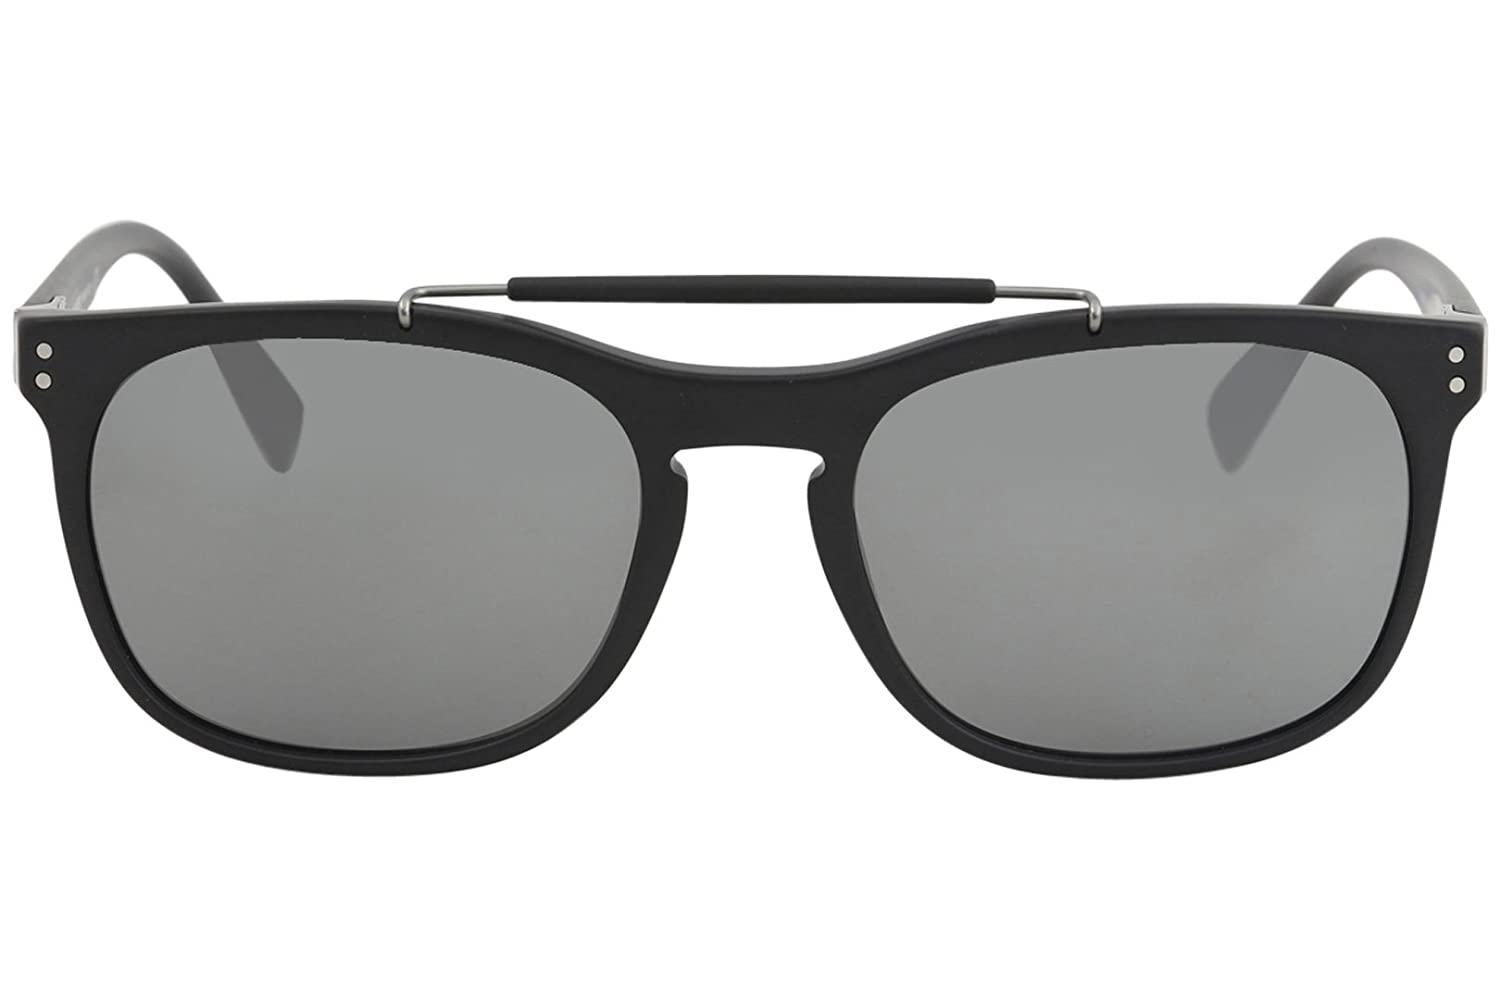 ef2e6f3ee13 Amazon.com  Burberry Men s 0BE4244 Matte Black Silver Mirror One Size   Clothing